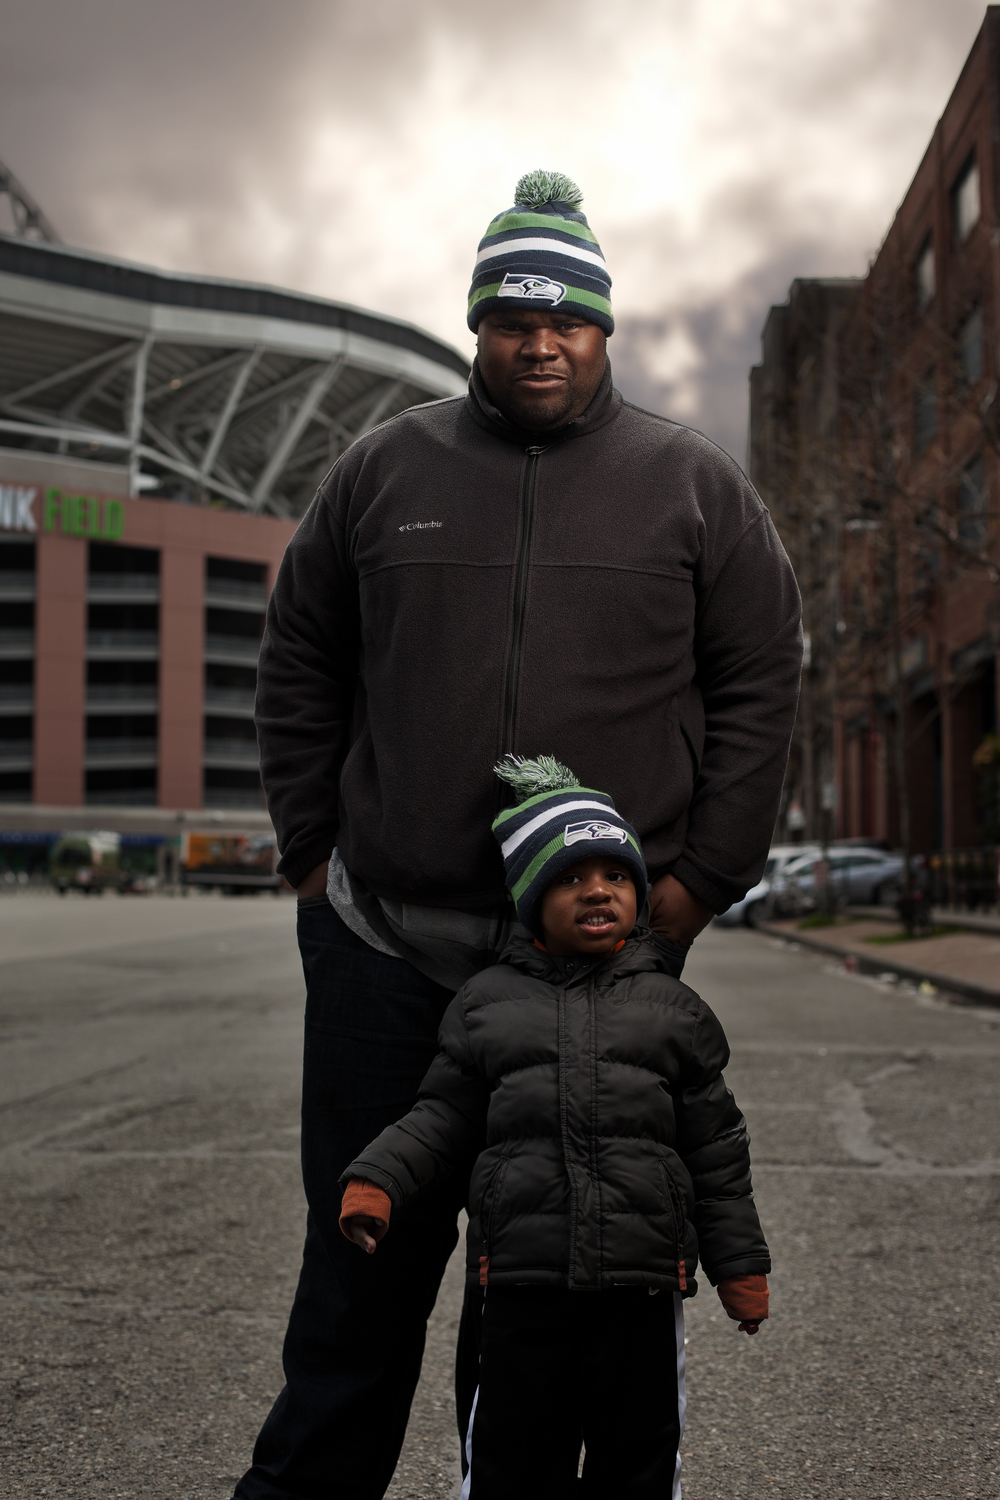 I caught Anthony and his son Xavier on their way into the Seattle Sounders game, and asked to take a portrait of them. From what I can tell, Anthony is a great dad, and Xavier is a happy kid.